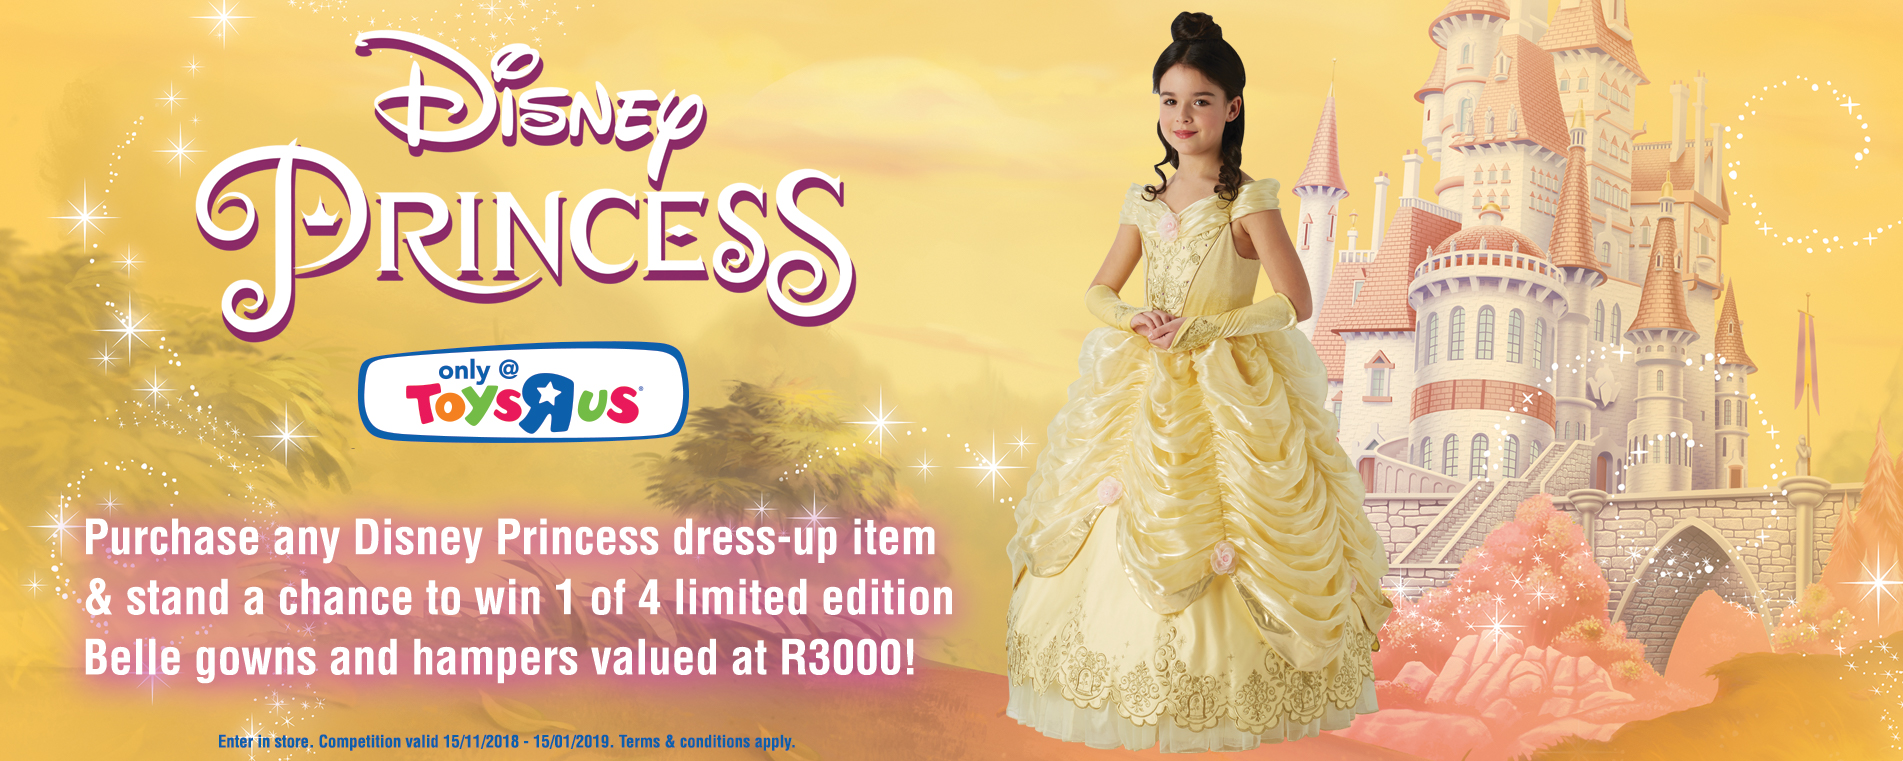 Disney Princess Dress Up Belle